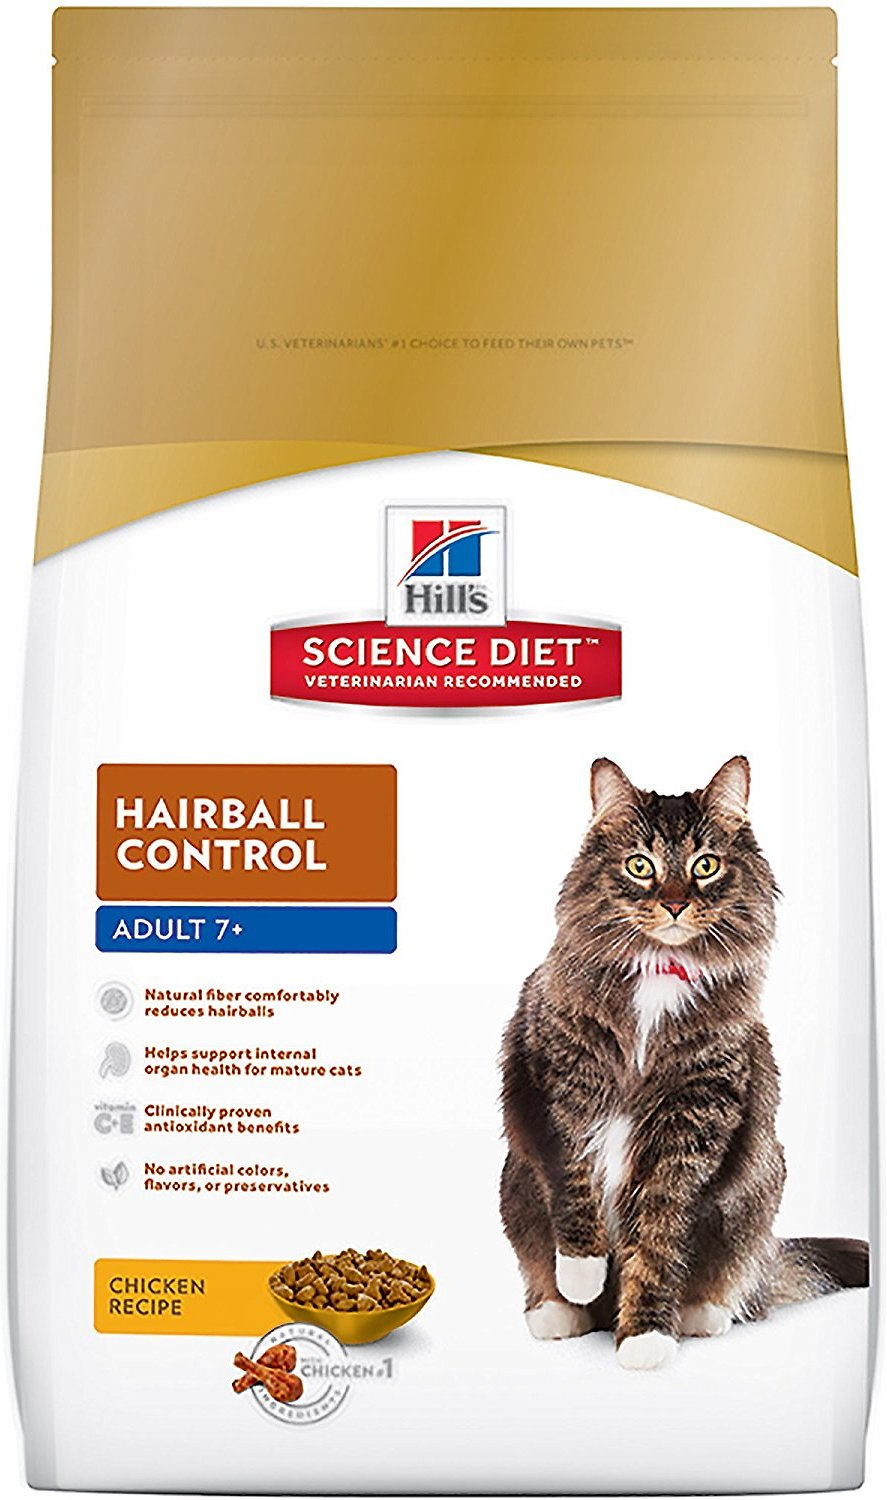 Hill's Science Diet Adult 7+ Hairball Control Dry Cat Food Image